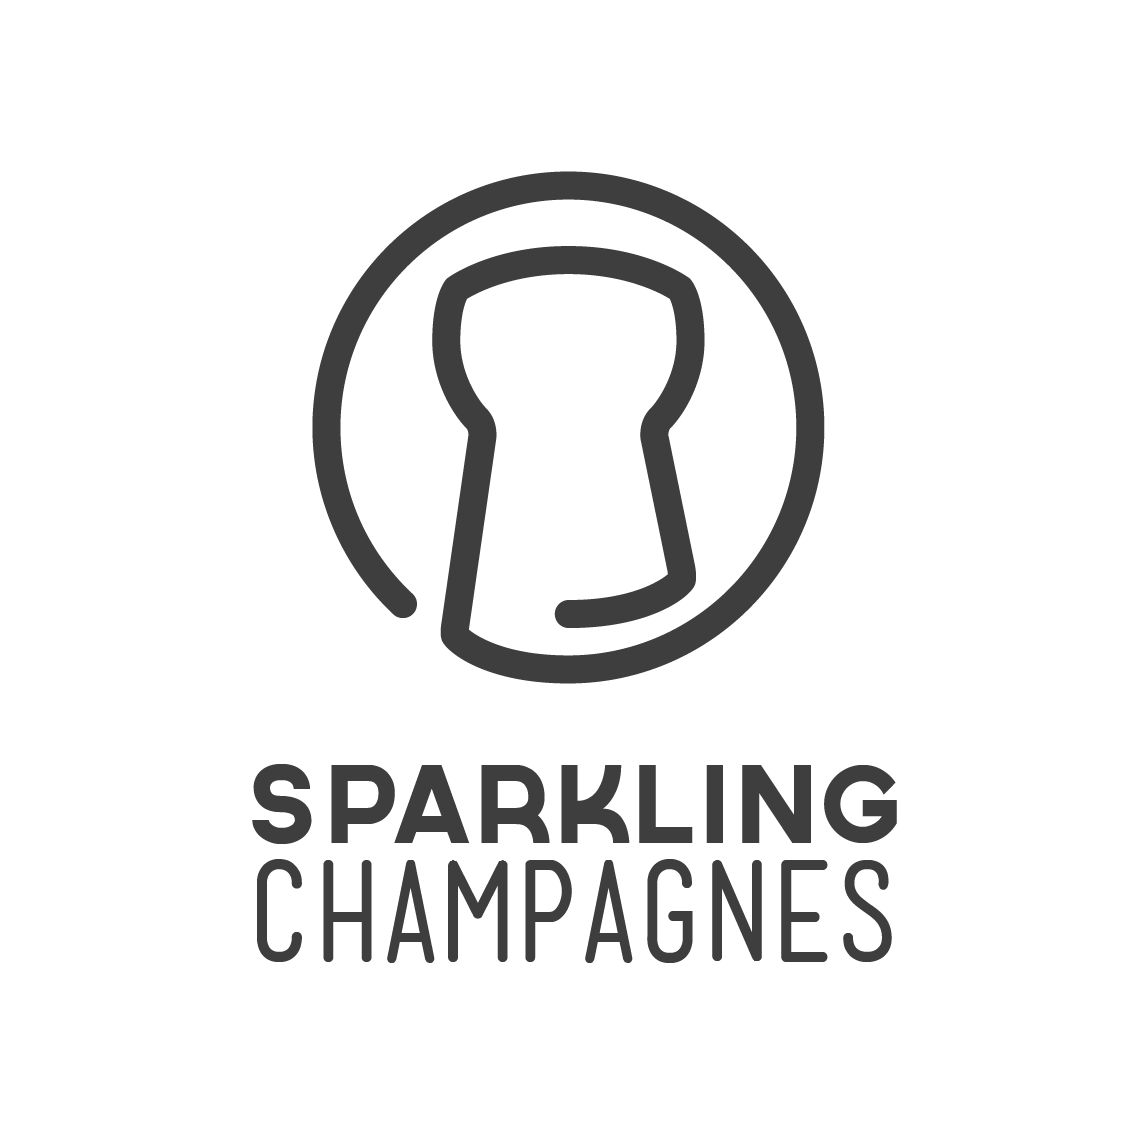 sparkling_champagnes-01-01.png